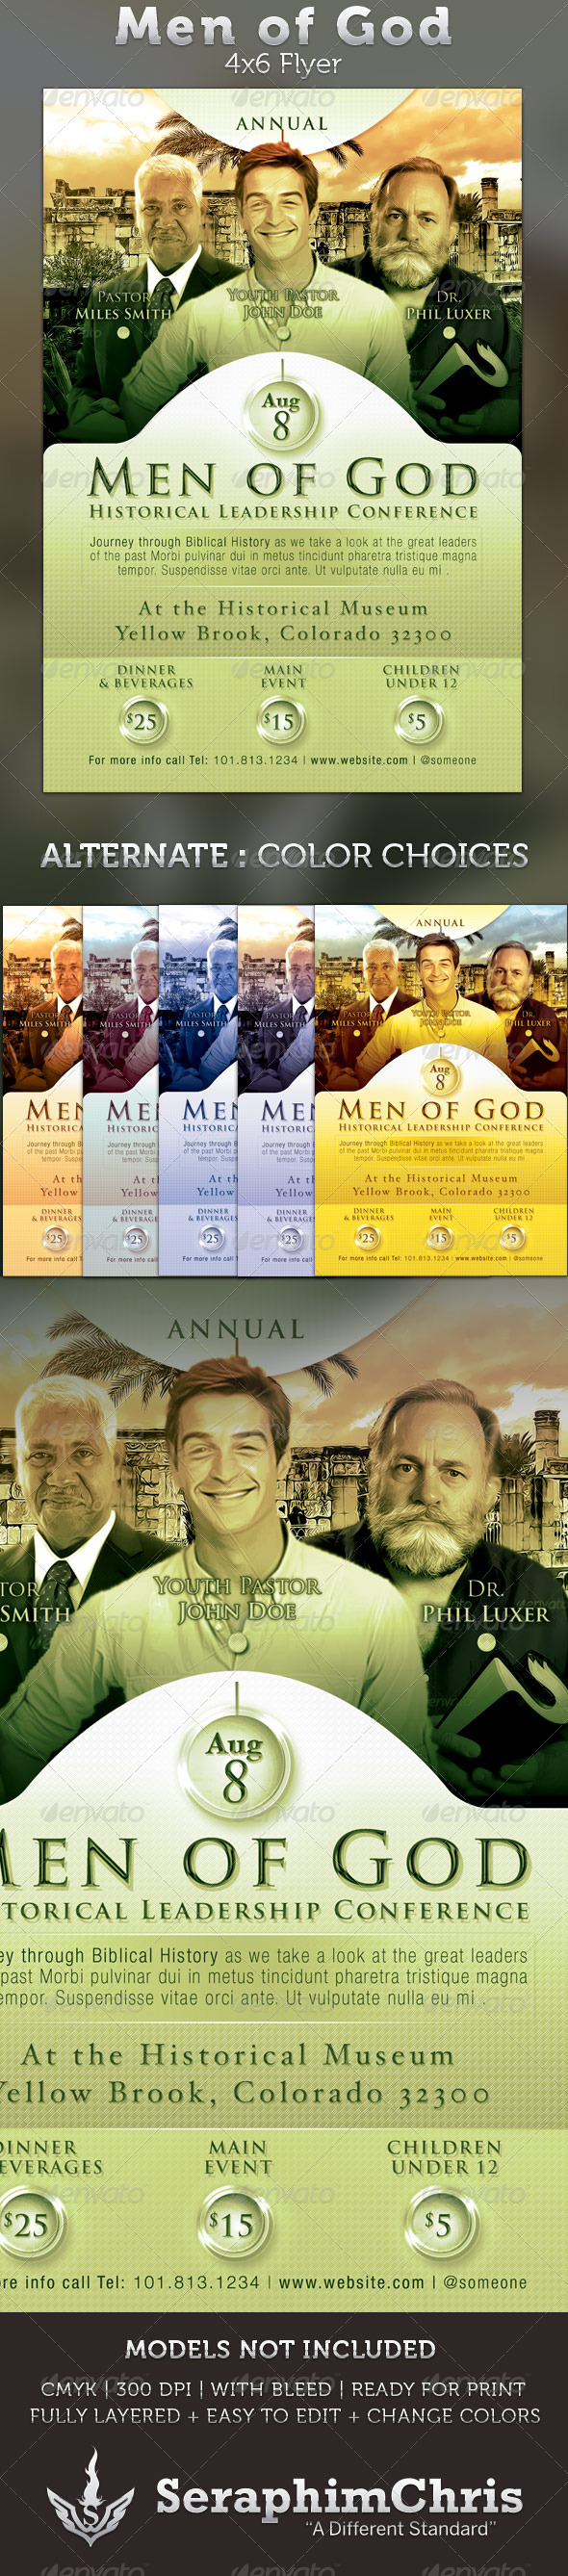 Men of God 4x6 Leadership Conference Flyer - Church Flyers